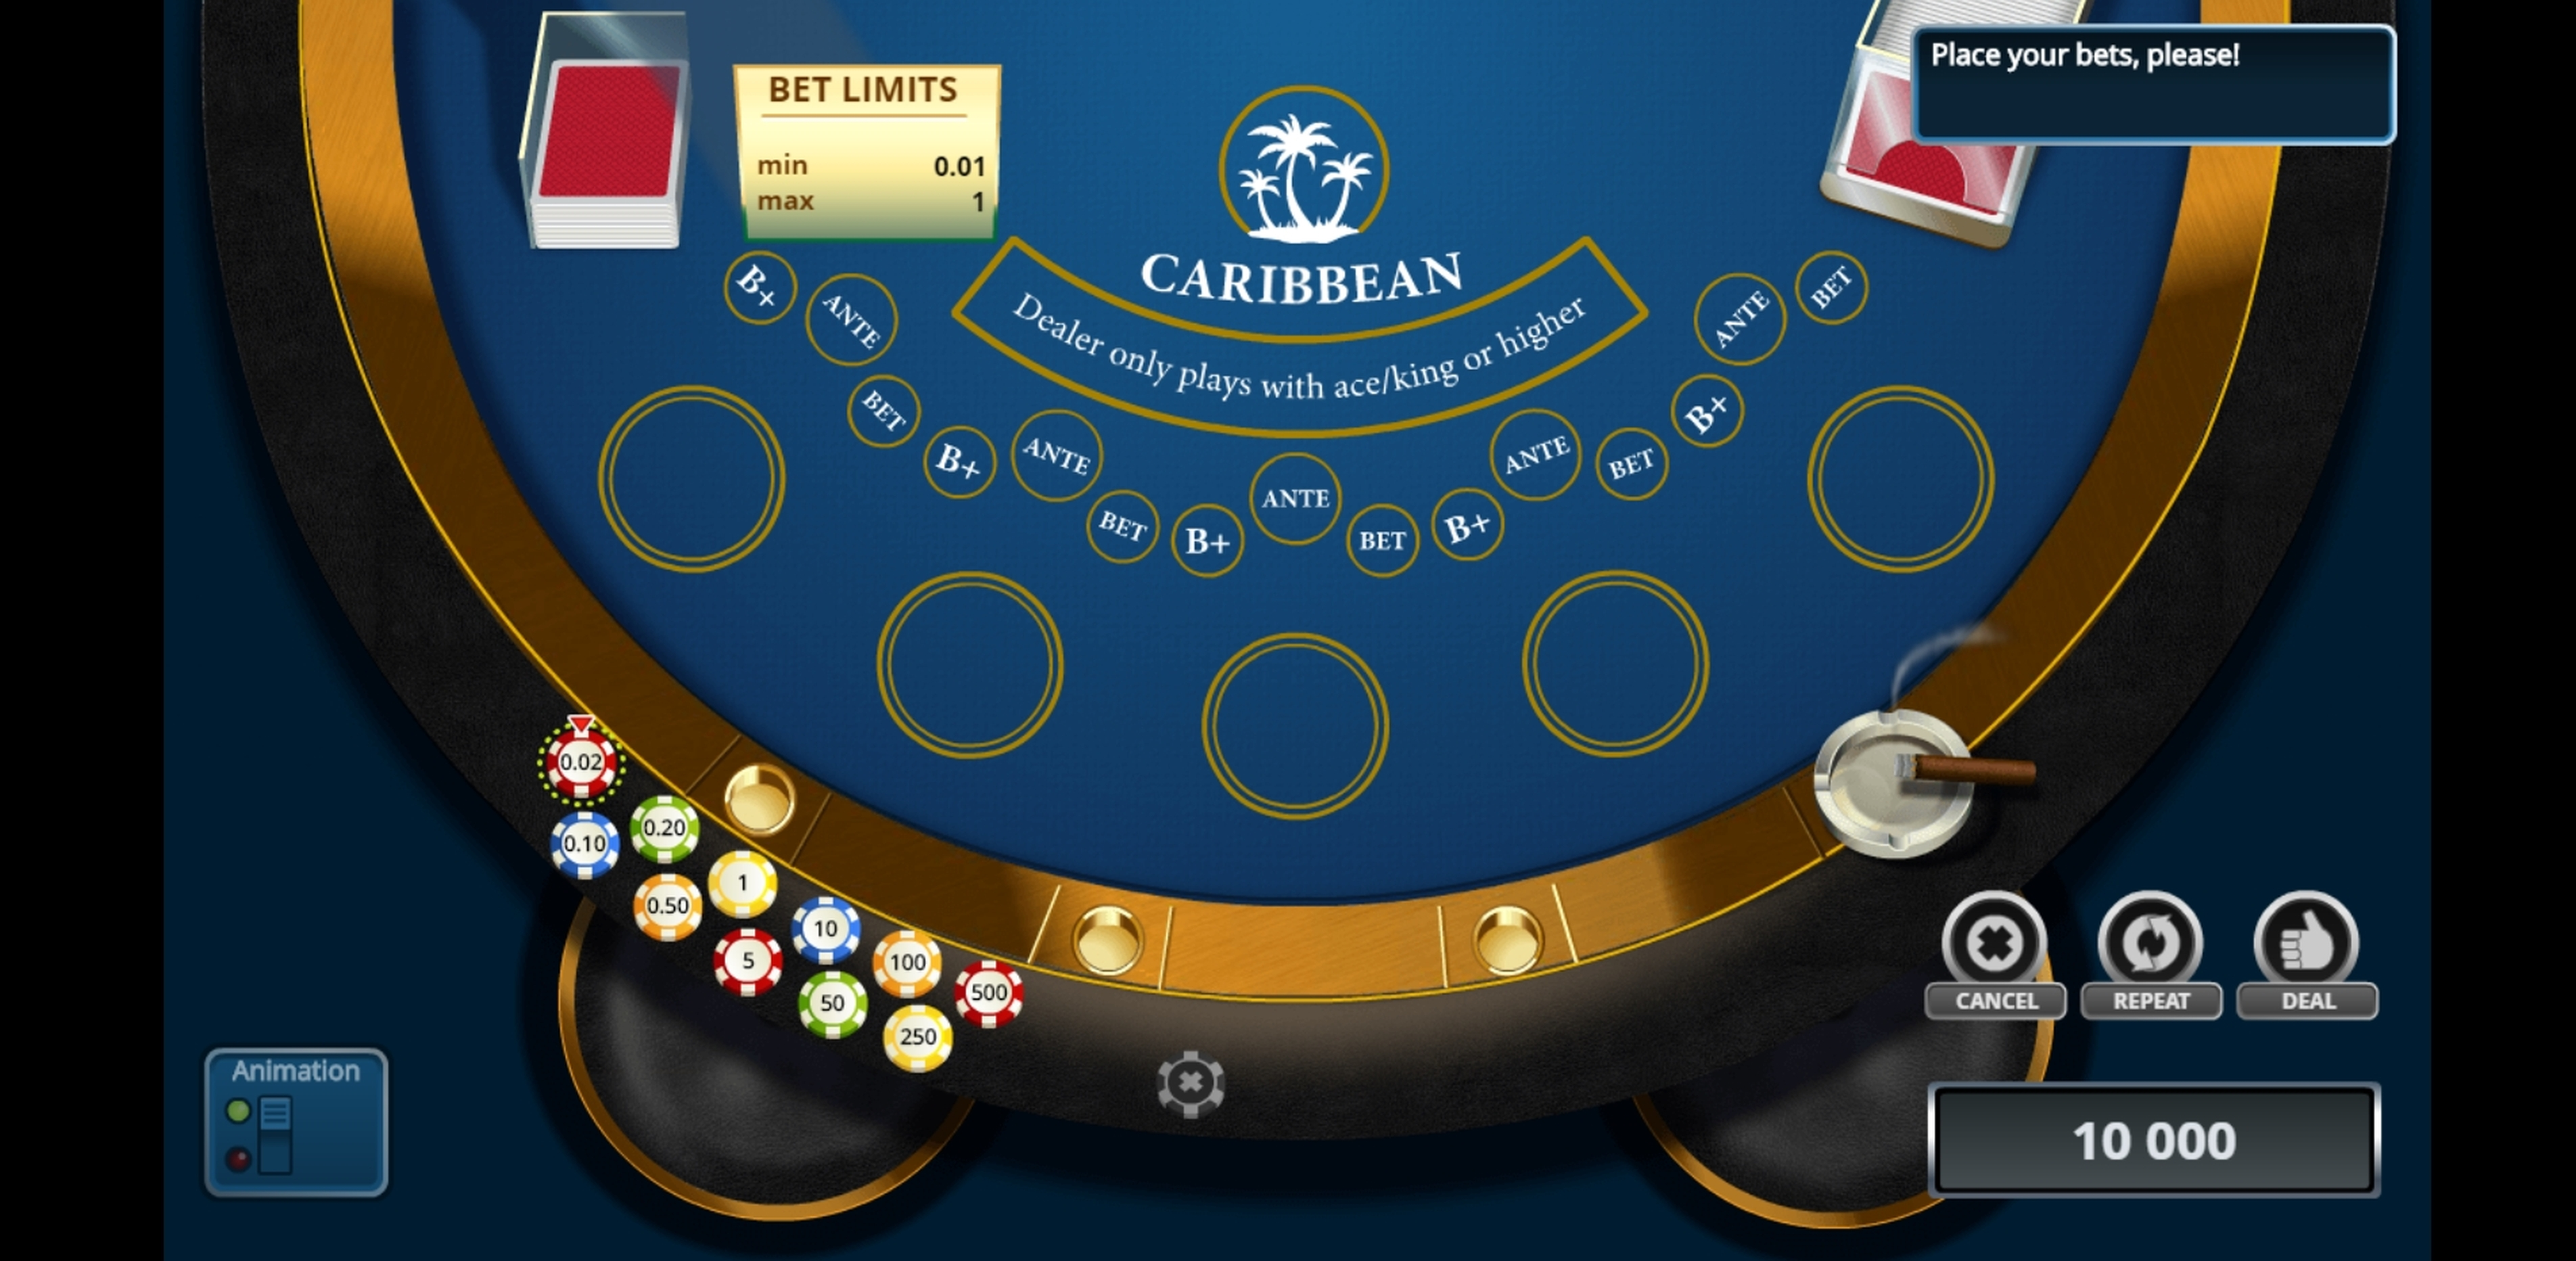 Reels in Caribbean Poker (Novomatic) Slot Game by Novomatic